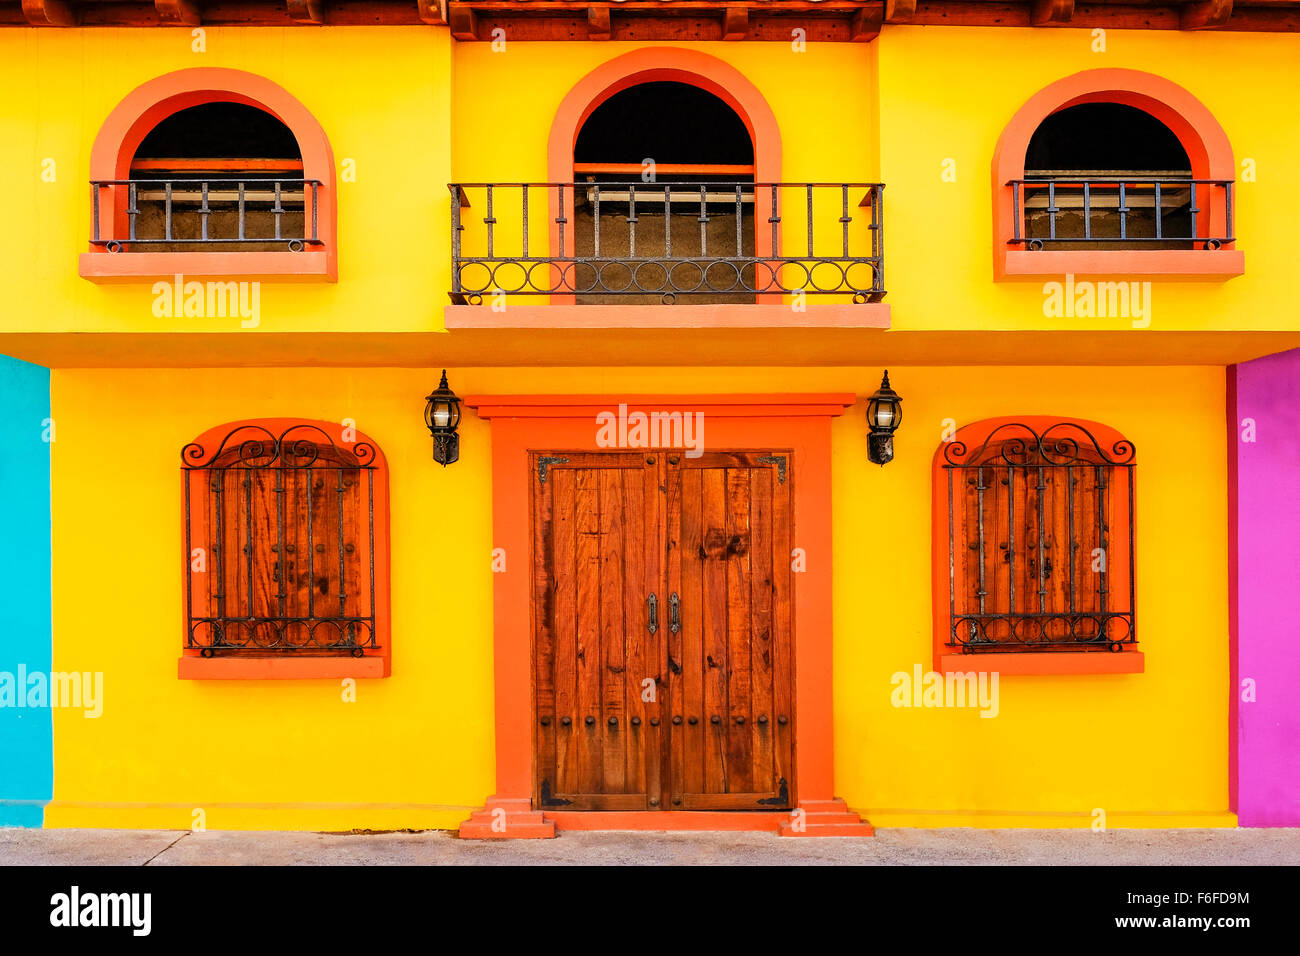 Exterior of Mexican house with wooden door and windows, Puerto Vallarta,  Mexico